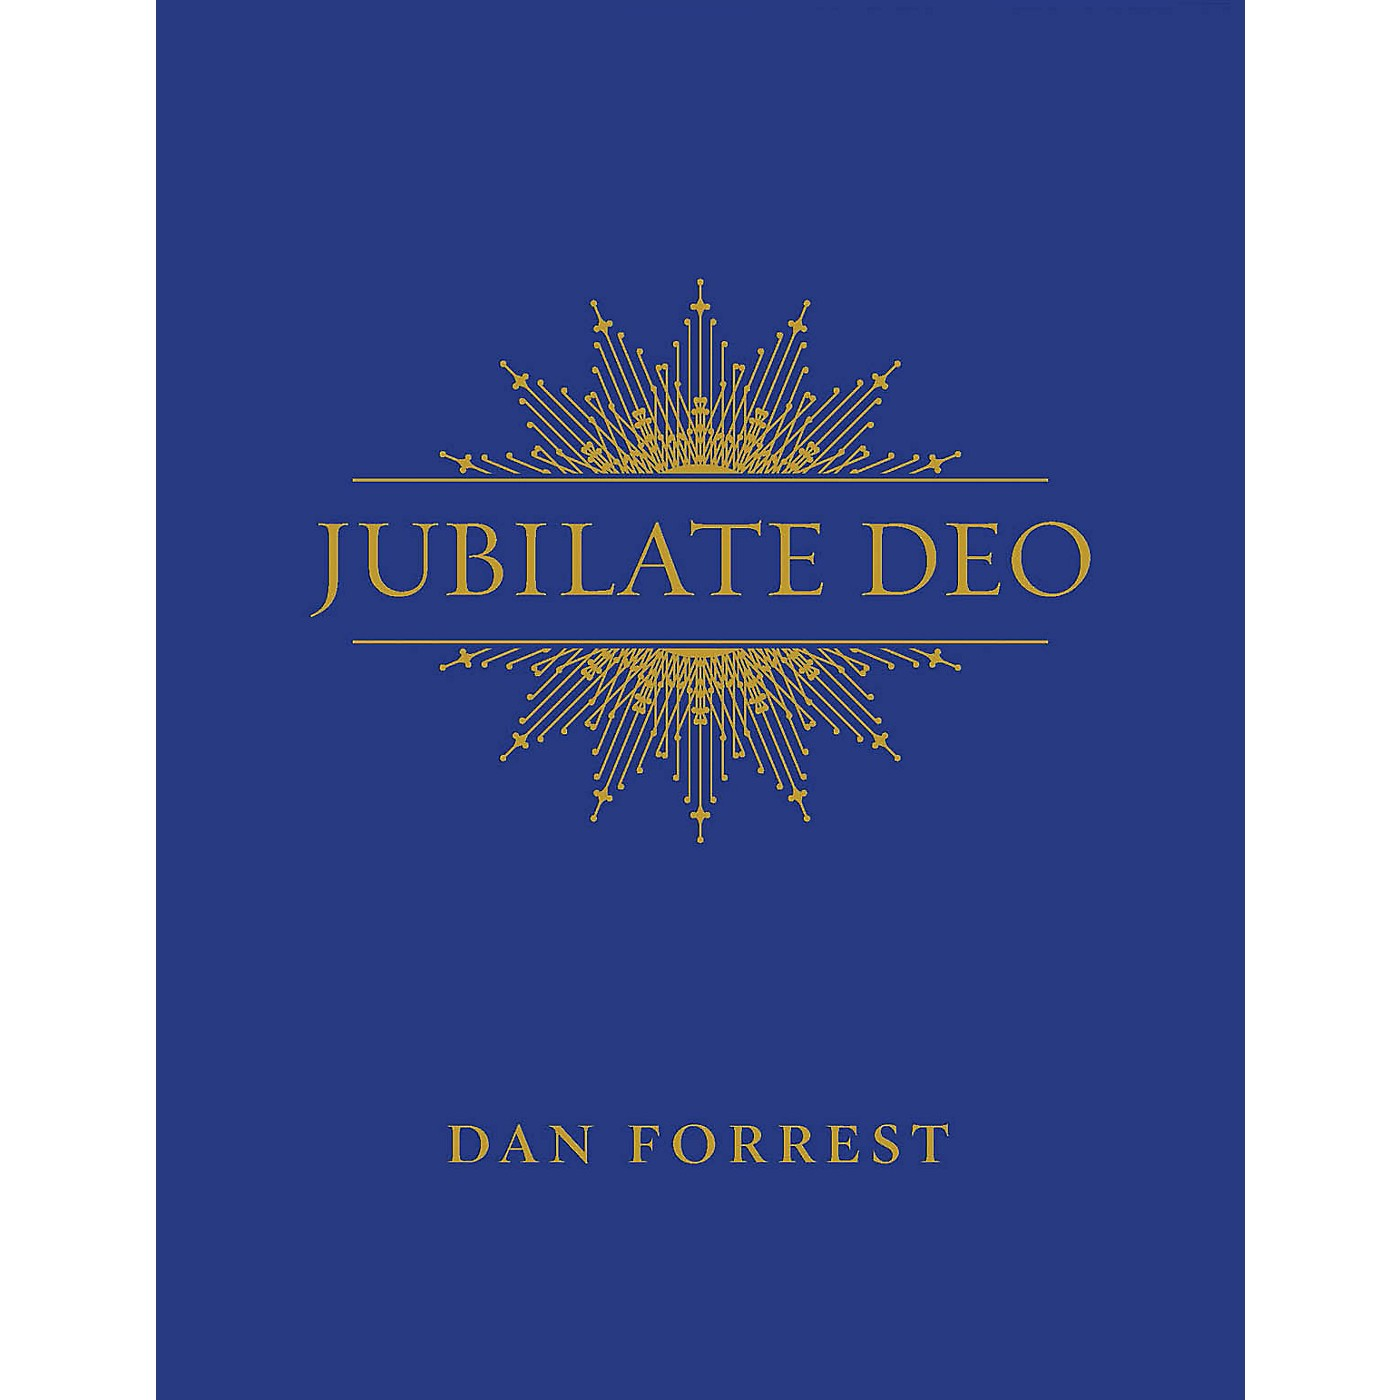 Hinshaw Music Jubilate Deo EXPANDED CHAMBER SCORE Composed by Dan Forrest thumbnail